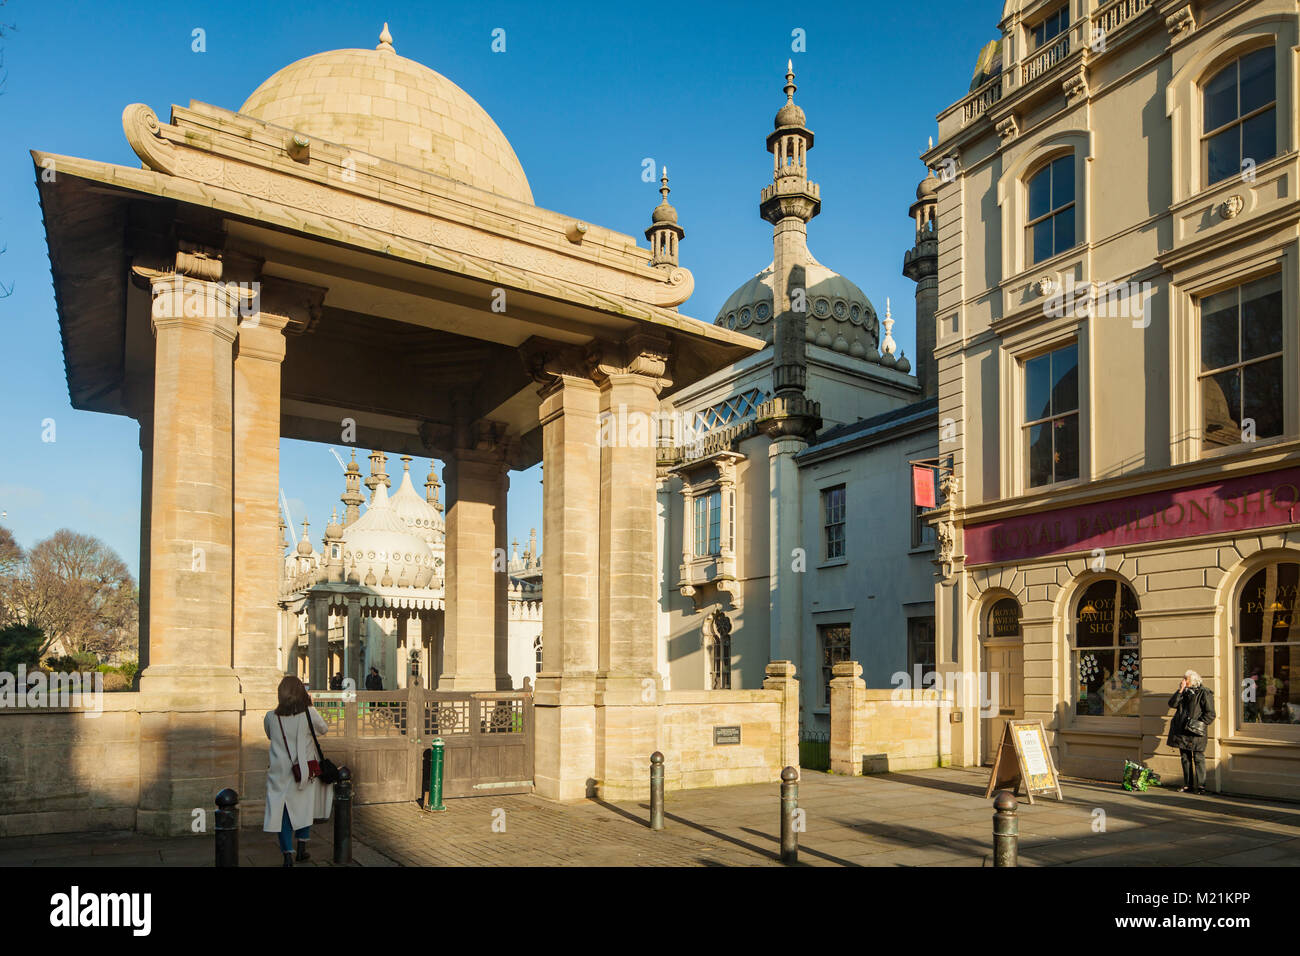 The gate at Royal Pavilion in Brighton, East Sussex, England. - Stock Image